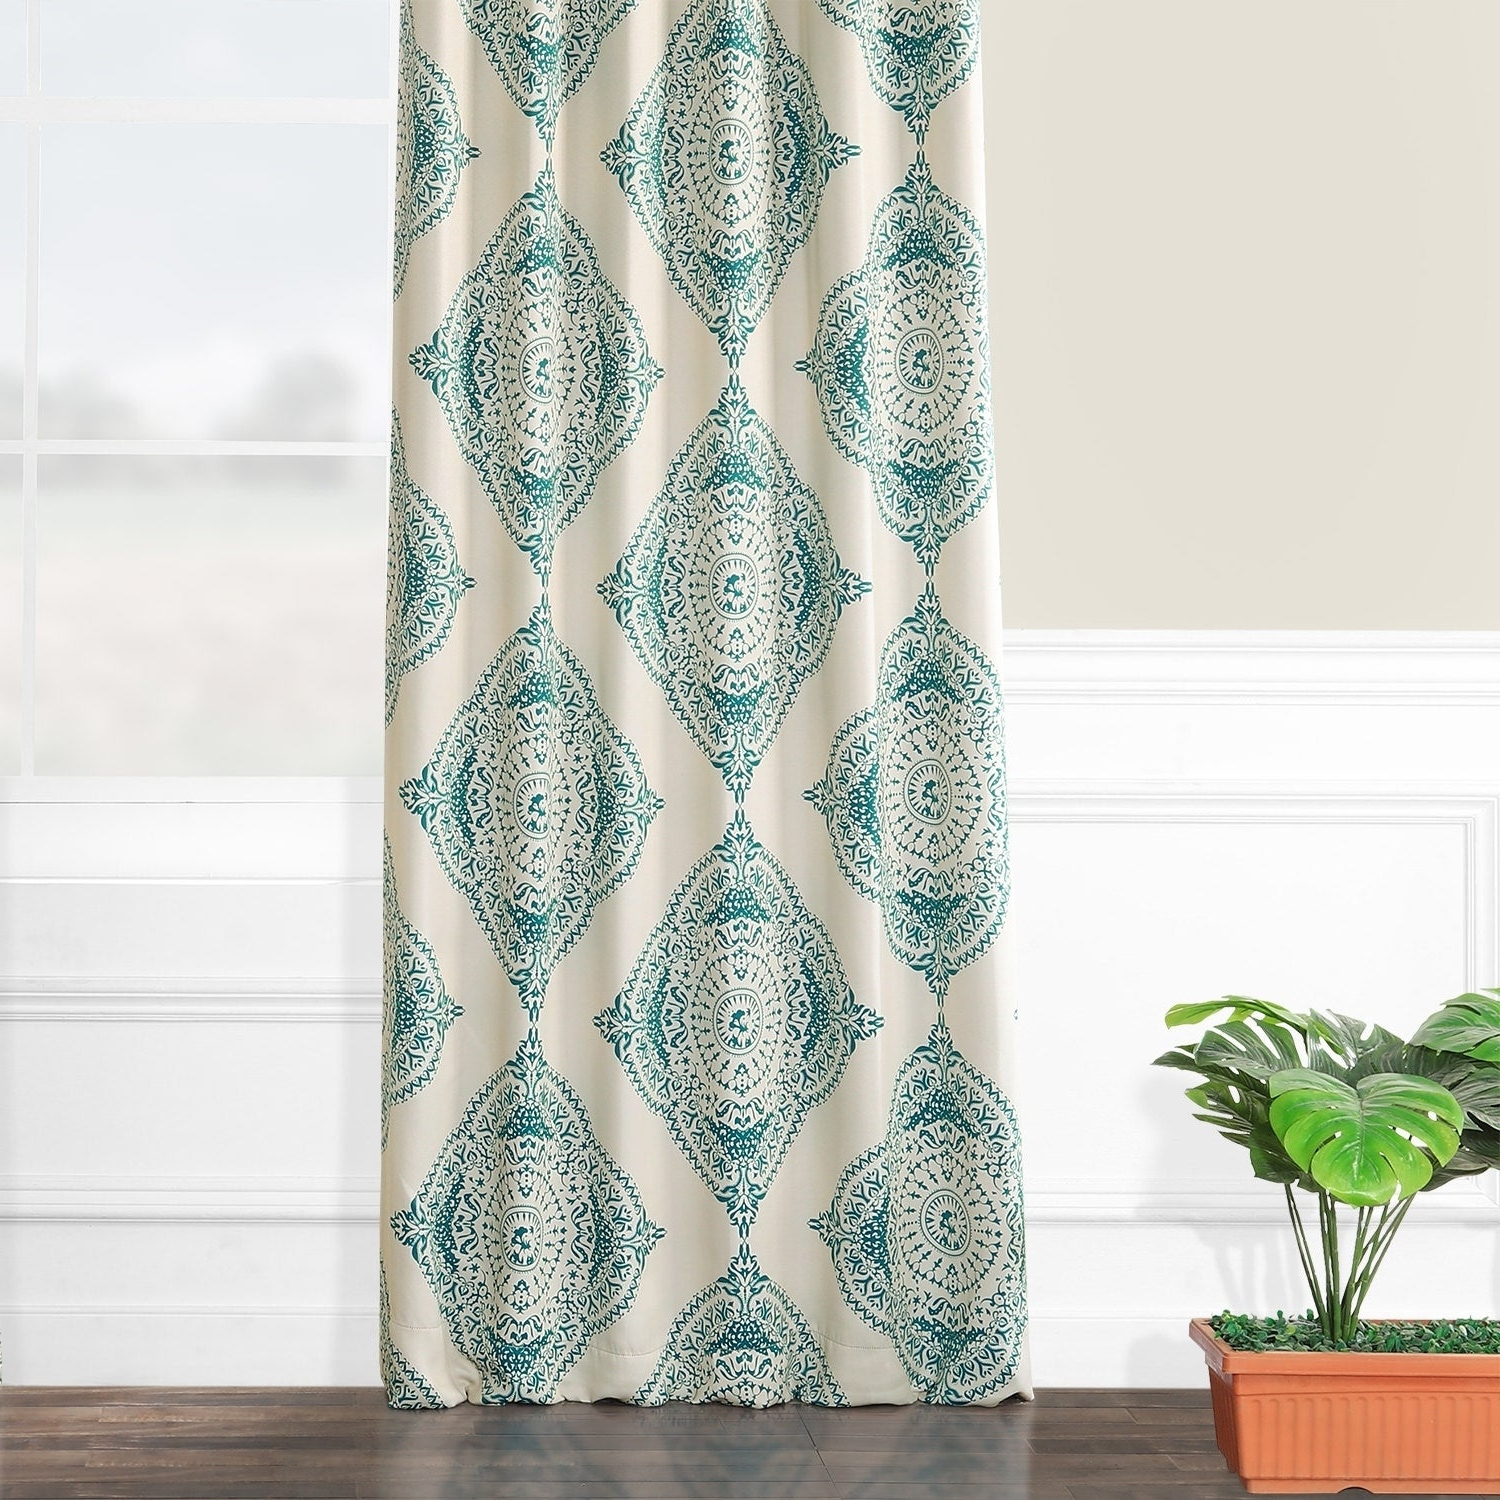 Preferred Shop Moroccan Style Thermal Insulated Blackout Curtain Panel Pertaining To Moroccan Style Thermal Insulated Blackout Curtain Panel Pairs (View 8 of 20)